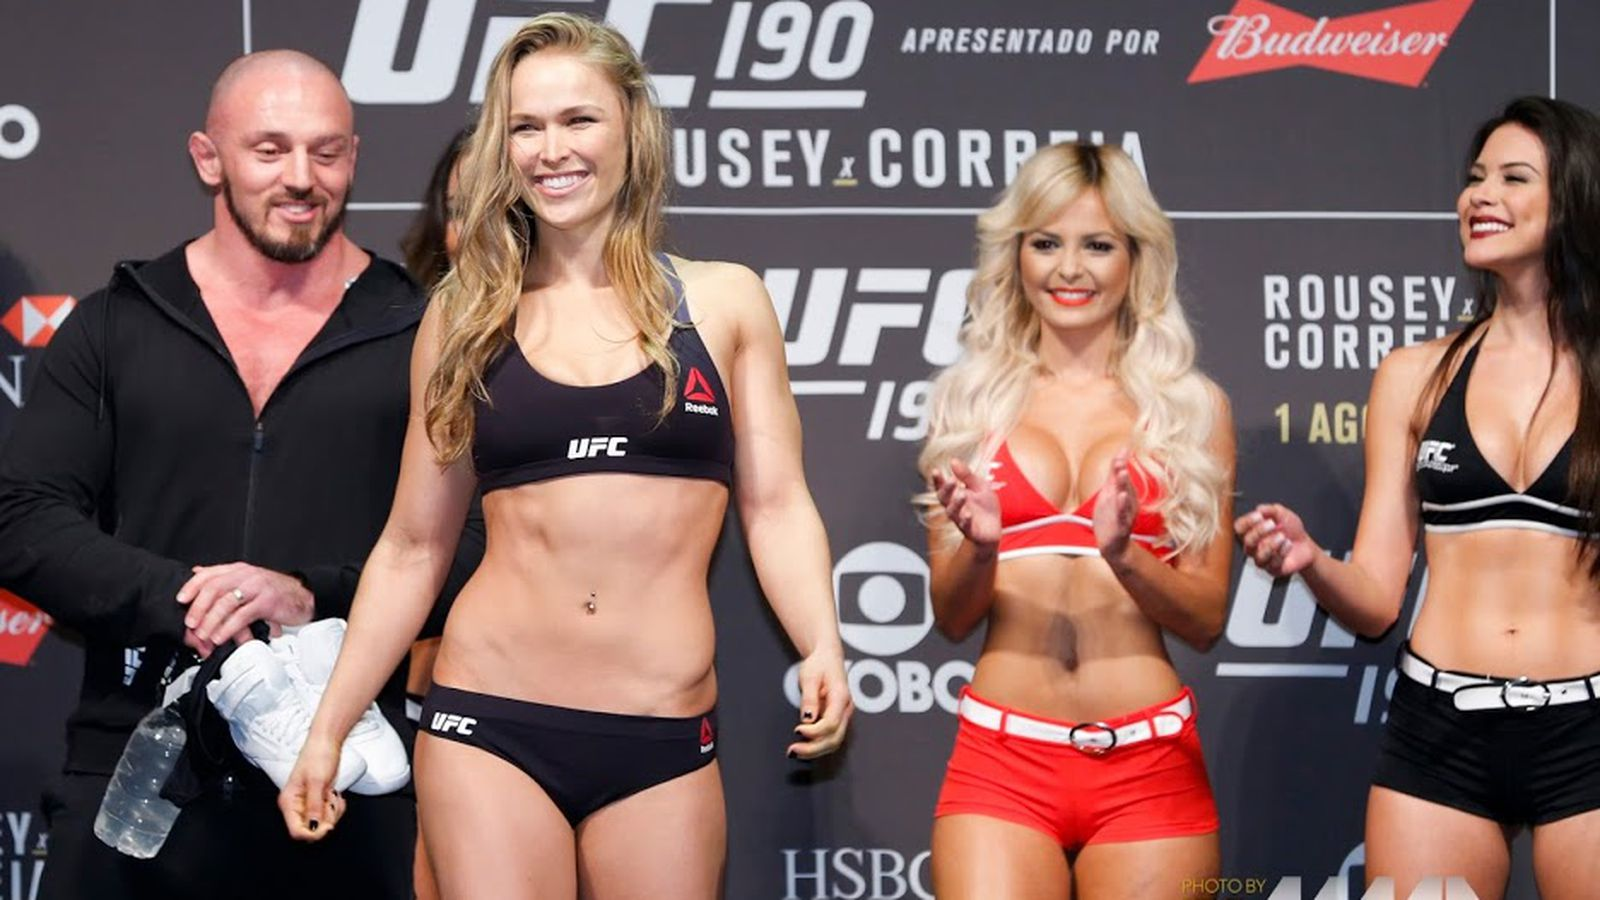 rousey boxing gif odds for nba